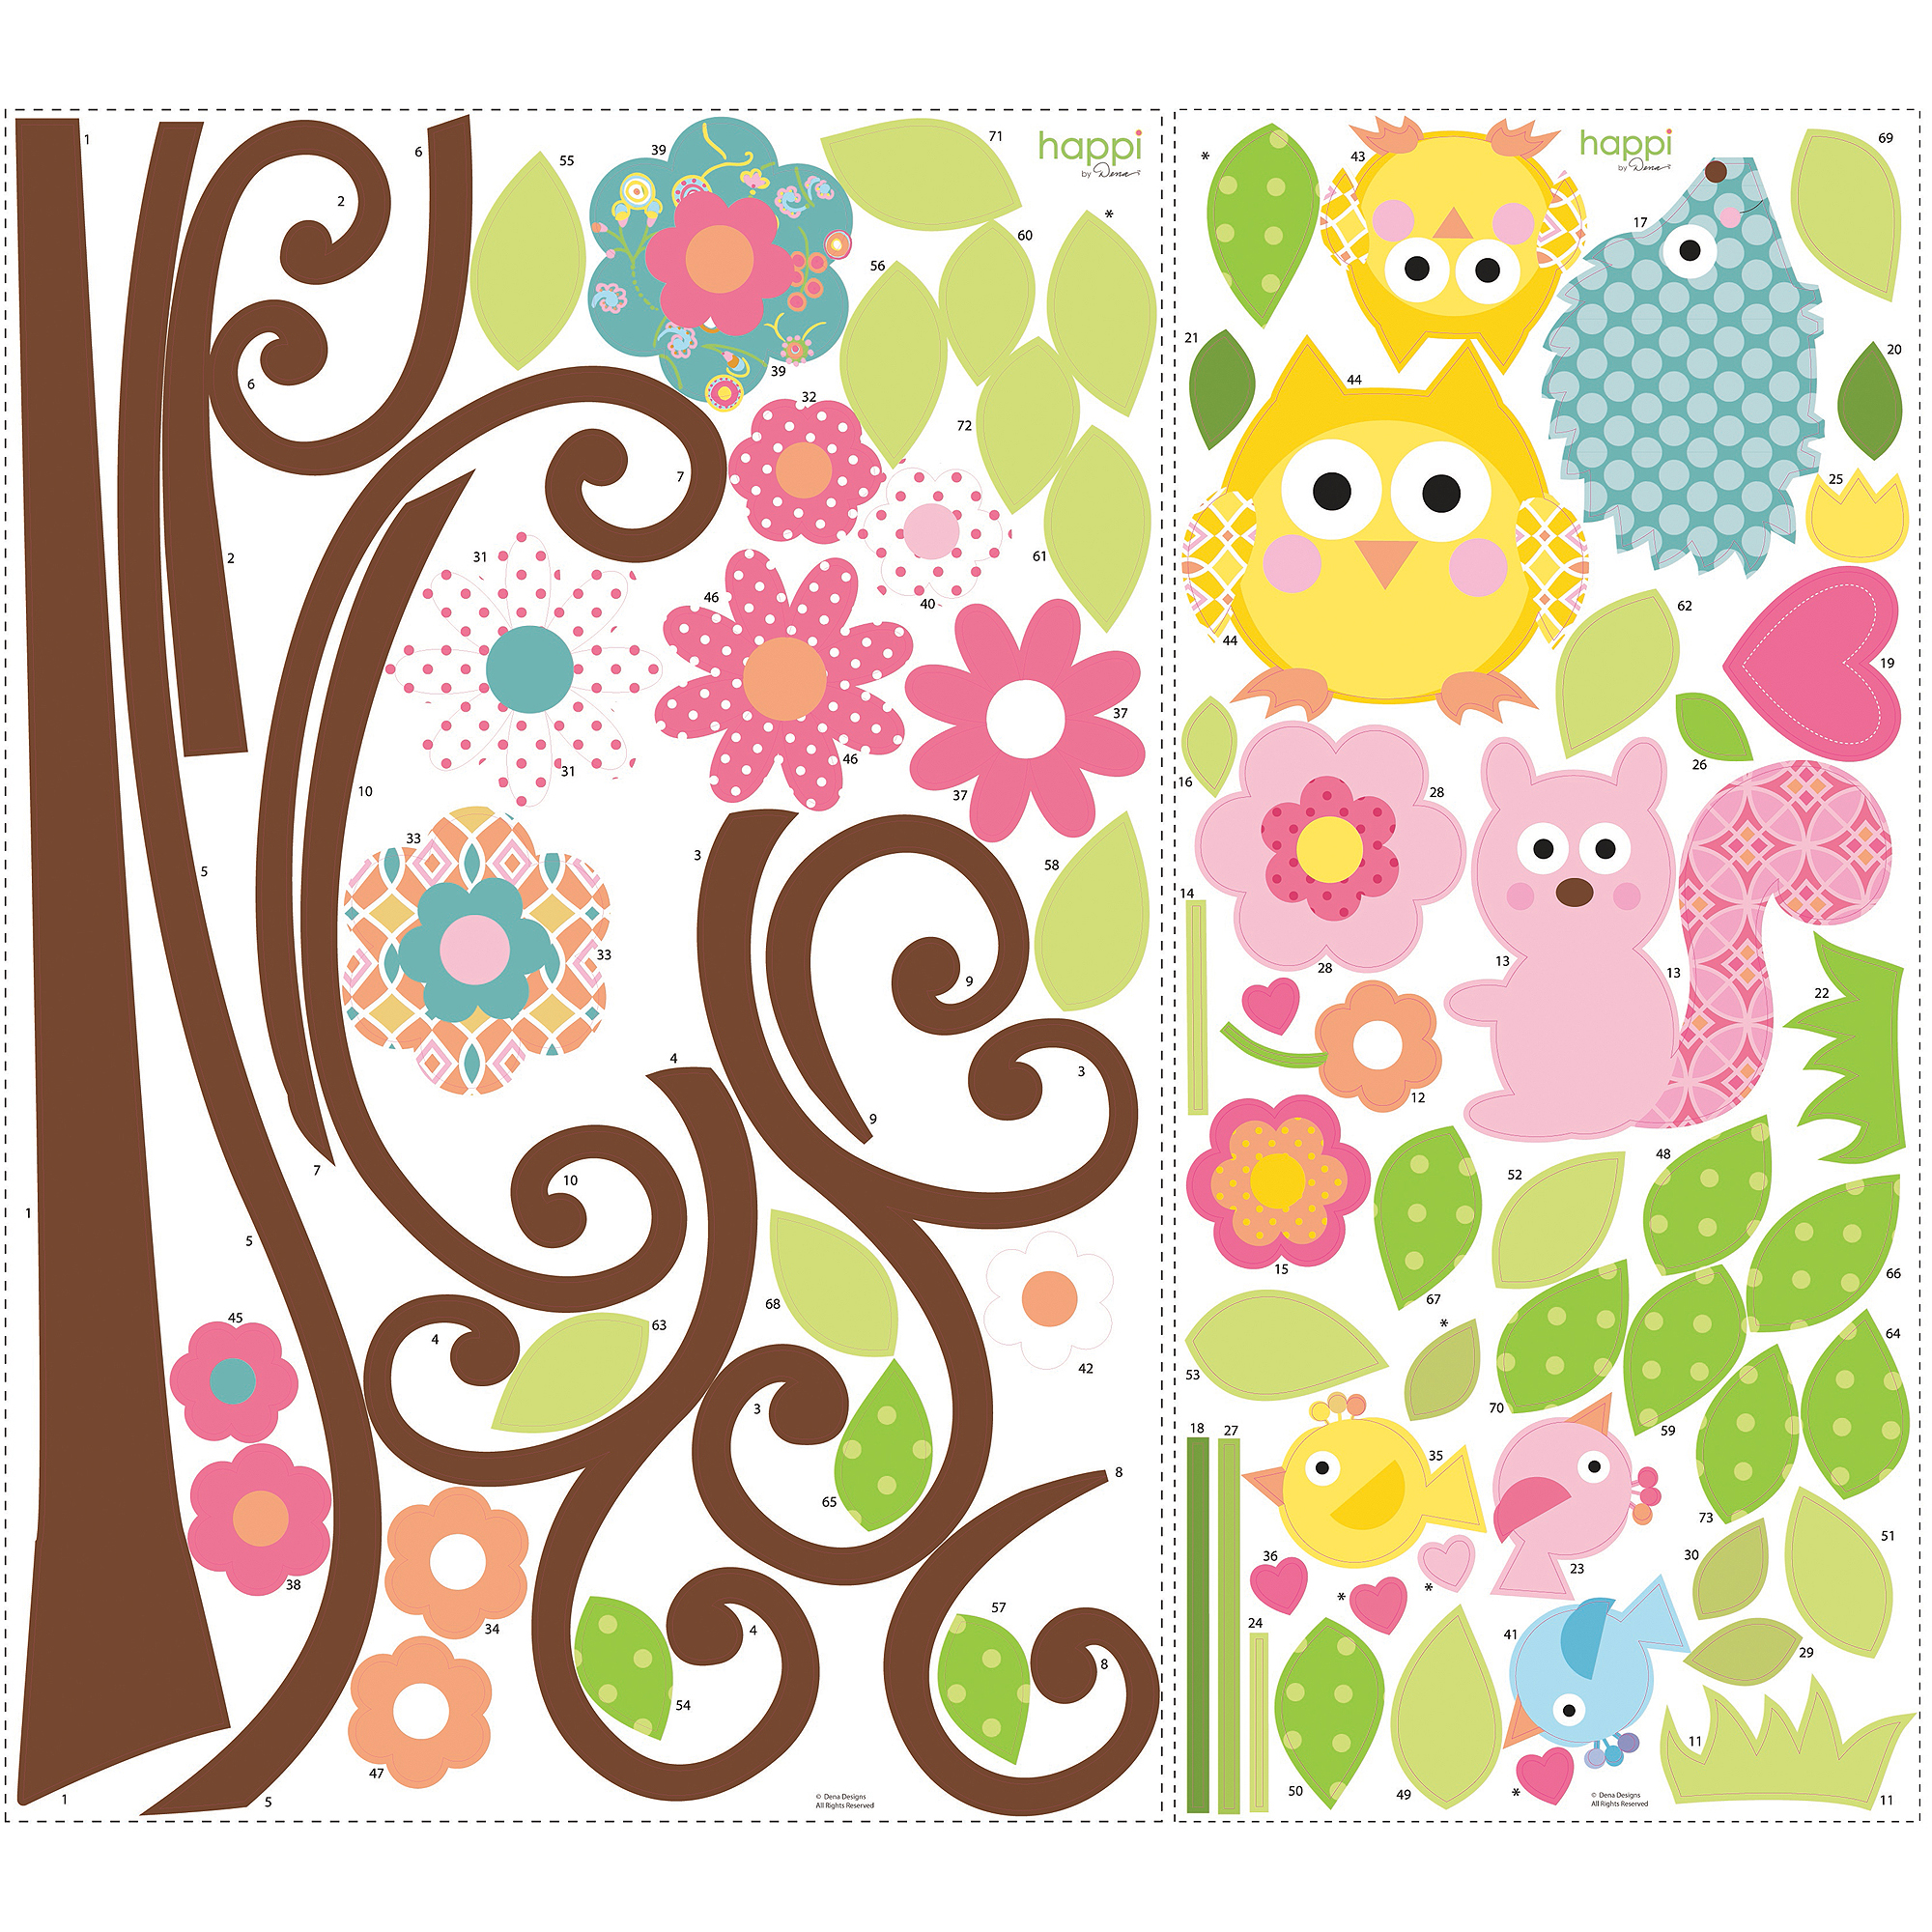 RoomMates - Peel & Stick Wall Decals Mega-Pack, Scroll Tree